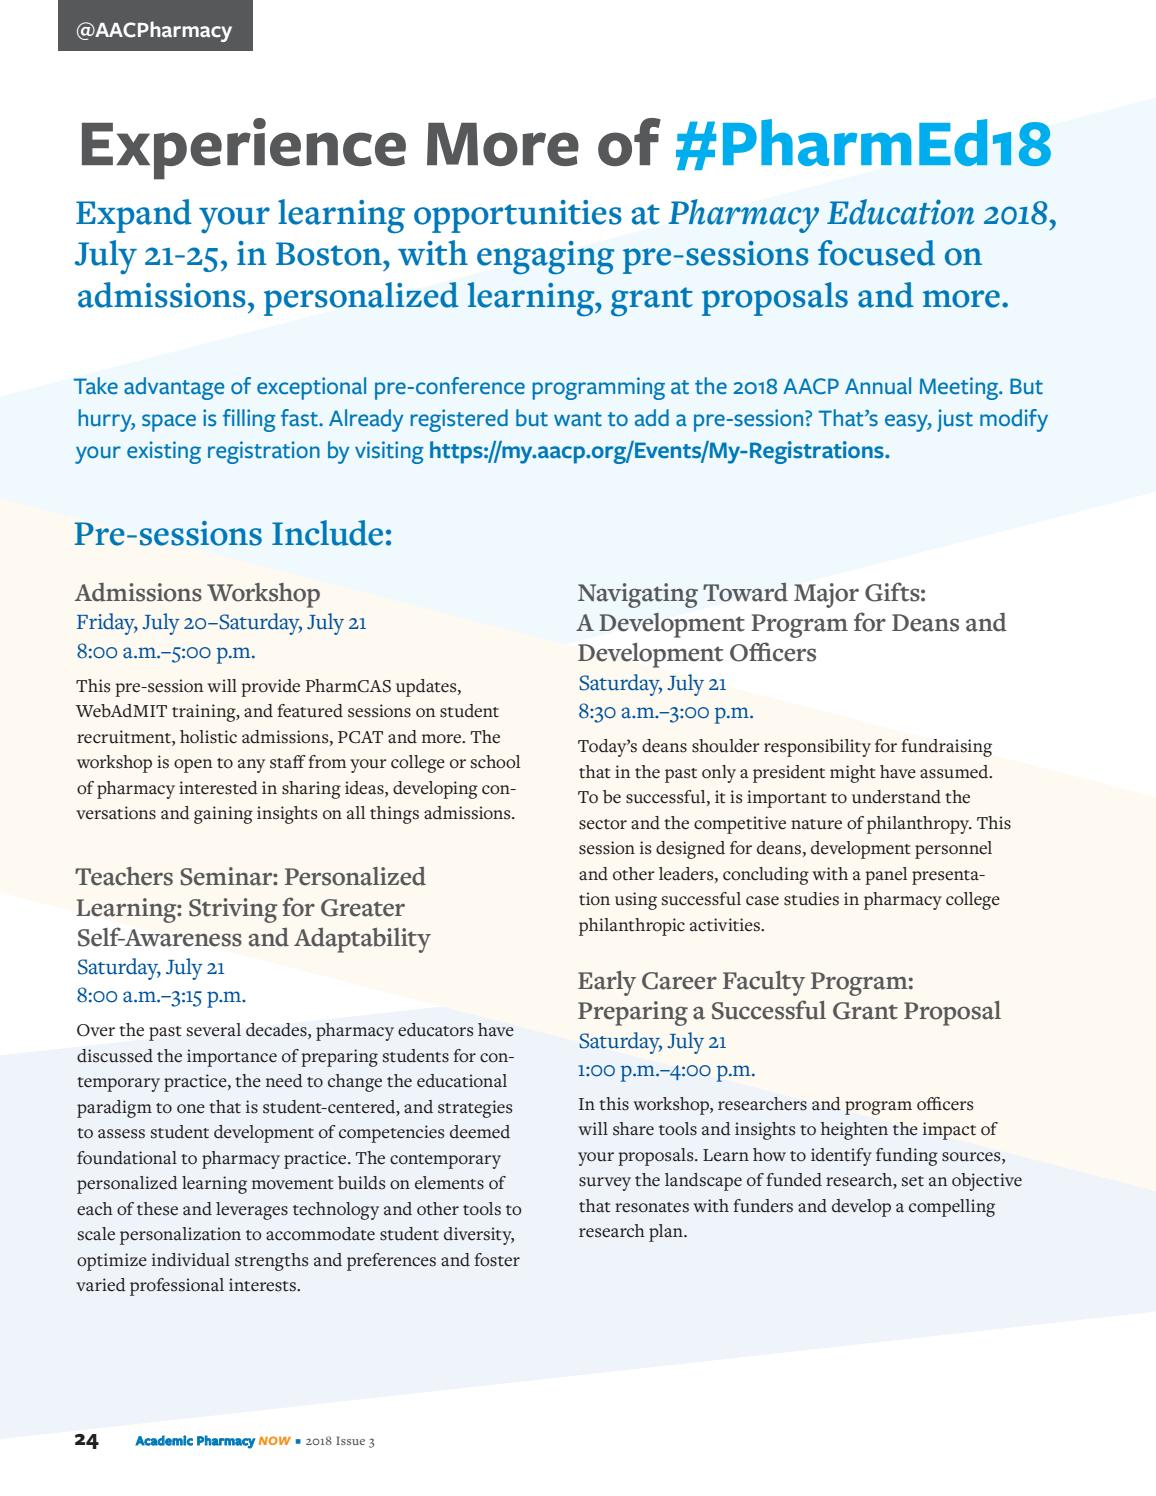 Academic Pharmacy Now: 2018 Issue 3 by AACP - issuu